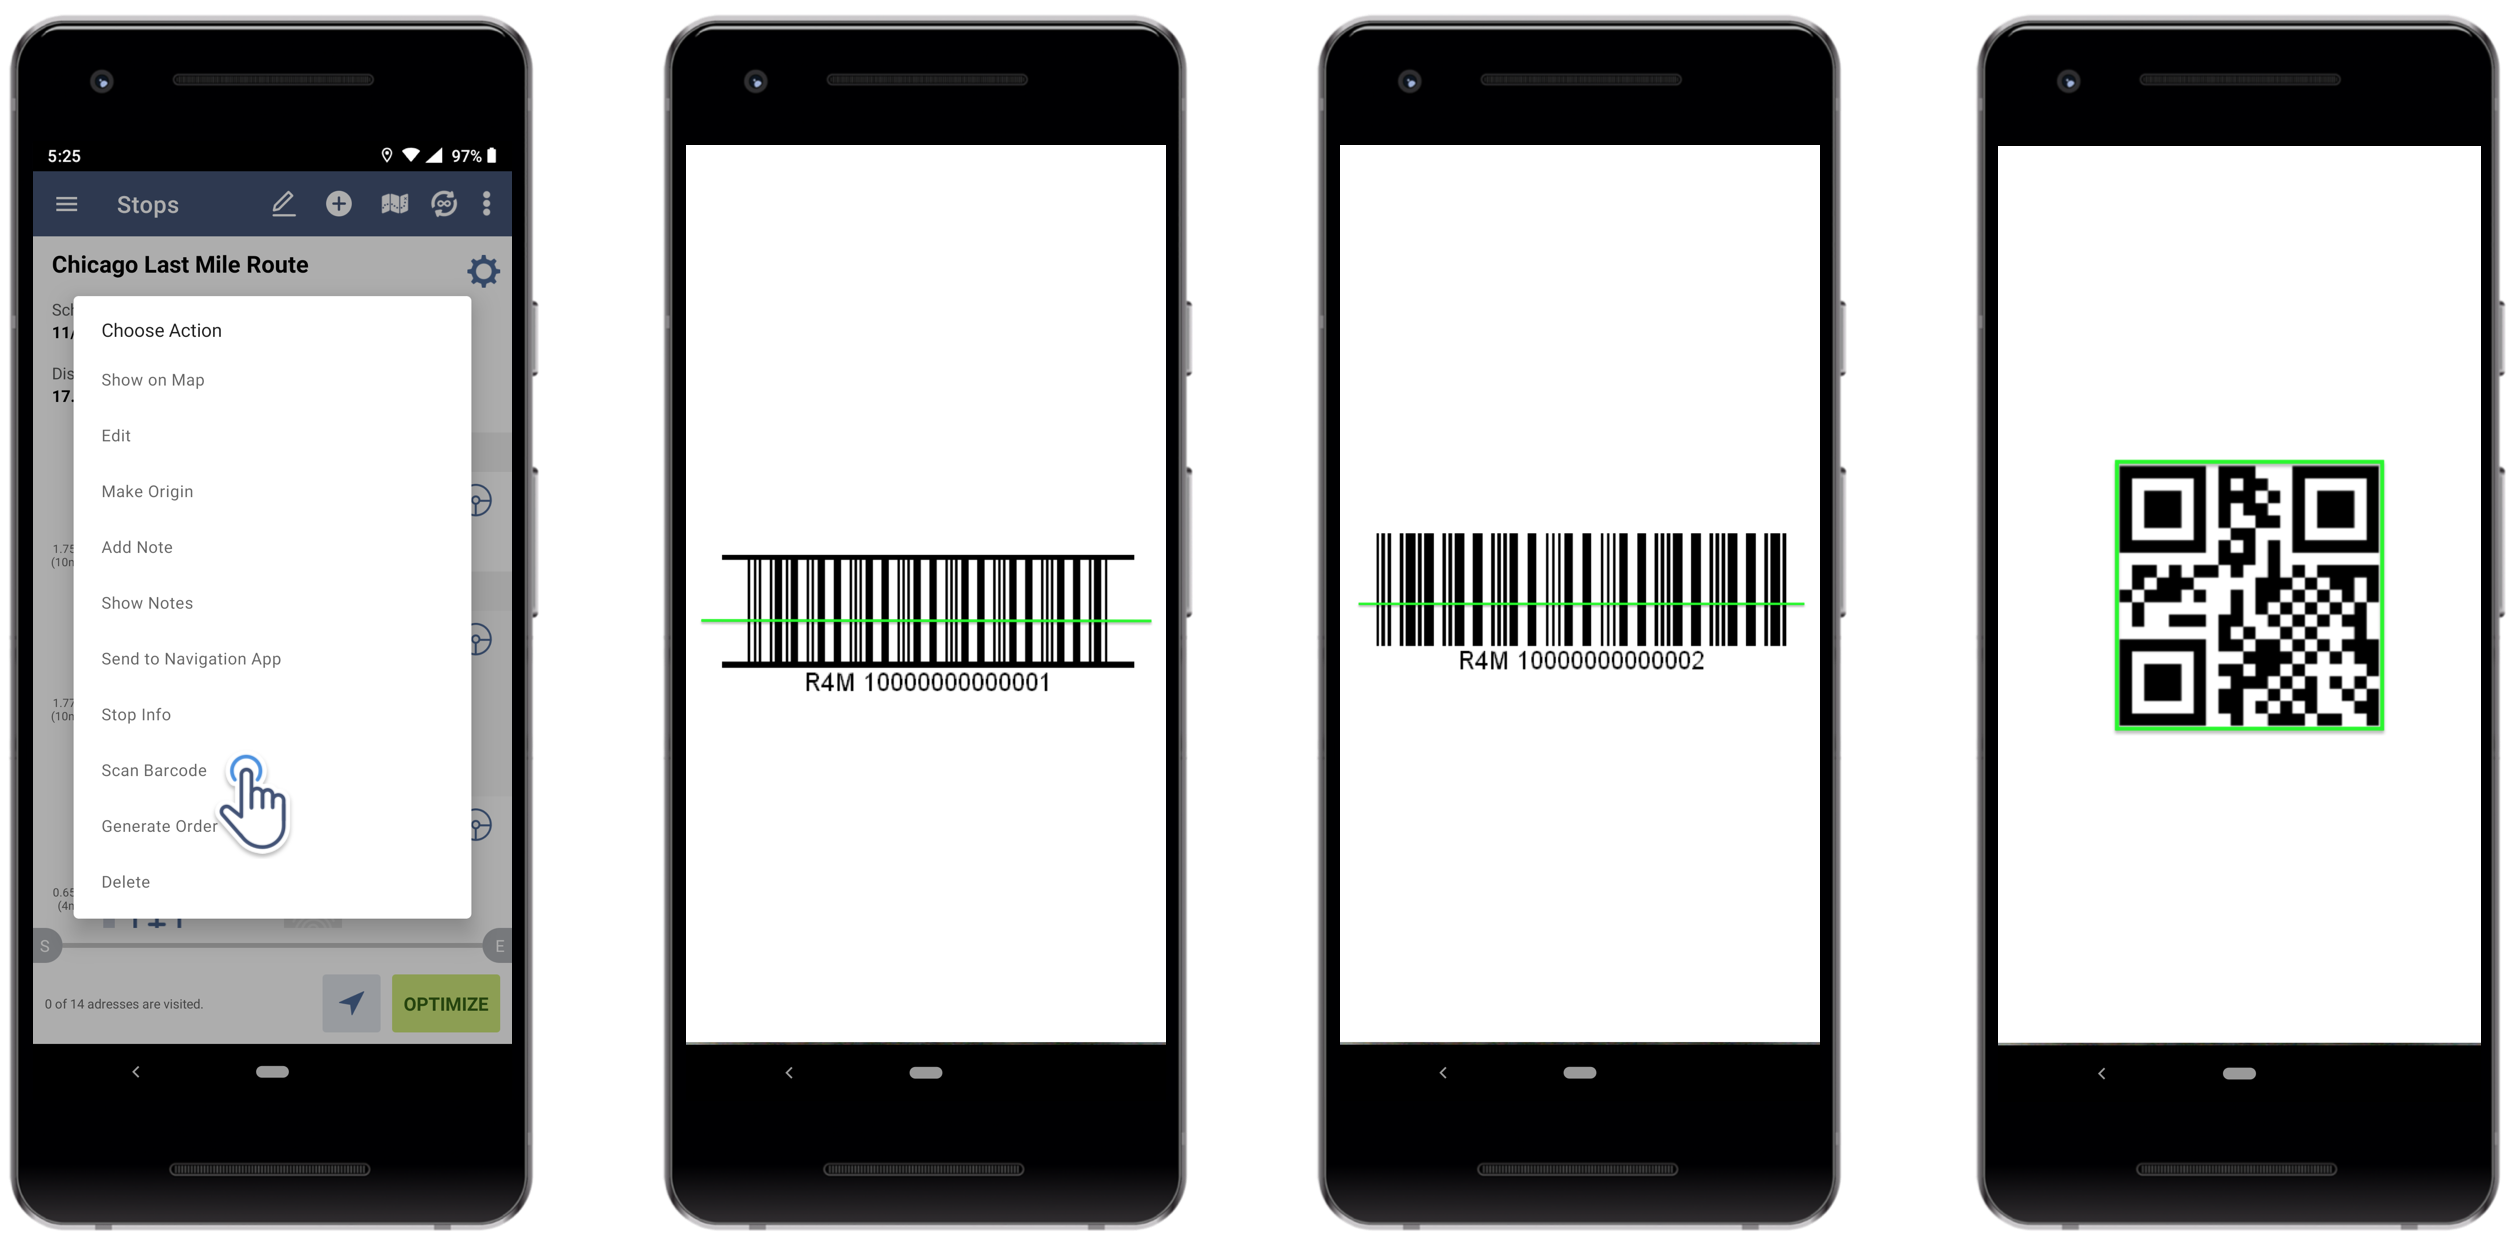 Track Delivery Stage On Barcode Scanner Route Planner App